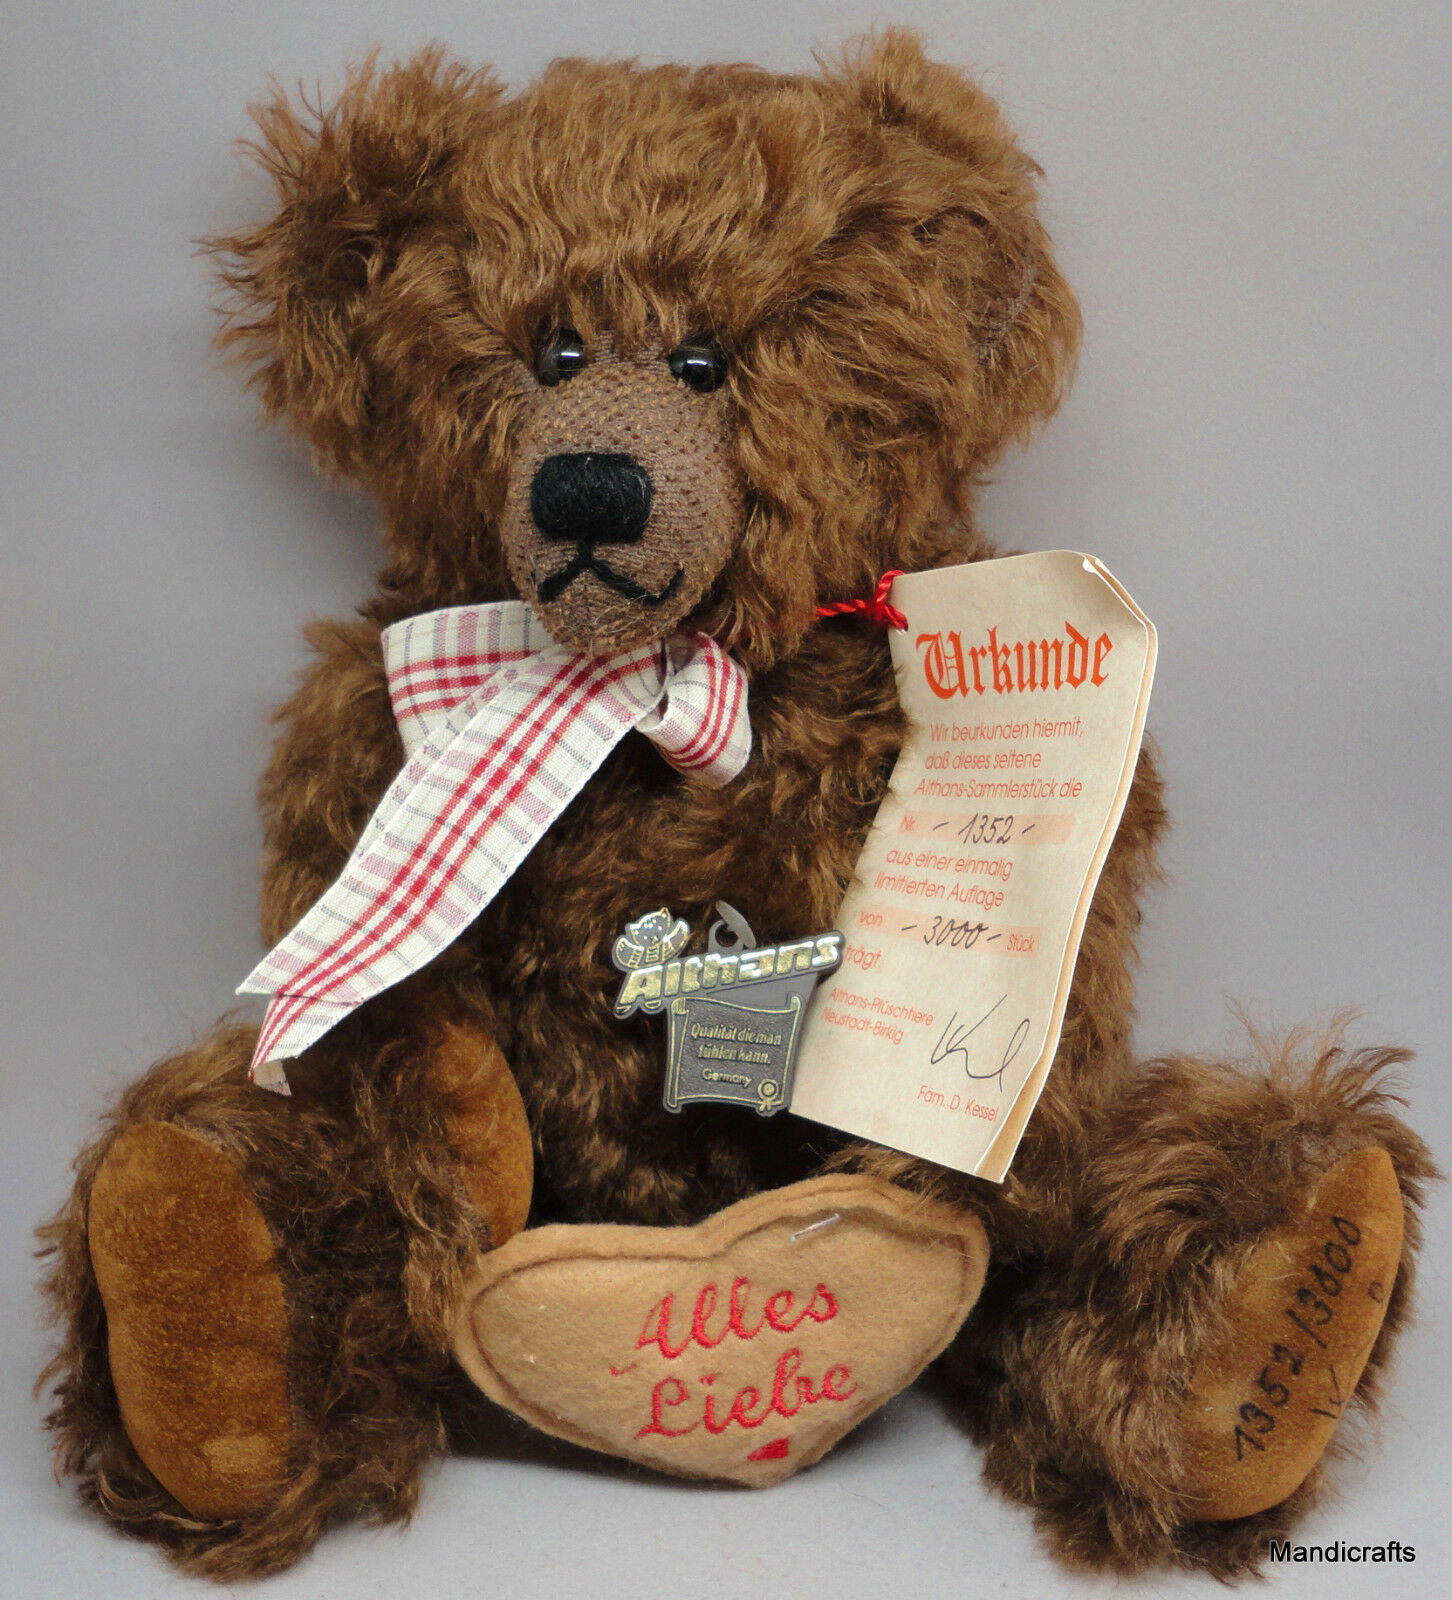 Althans Teddy Bear Mohair Plush LE 1352/3000 Heart Growler 12in Tag Cert Germany